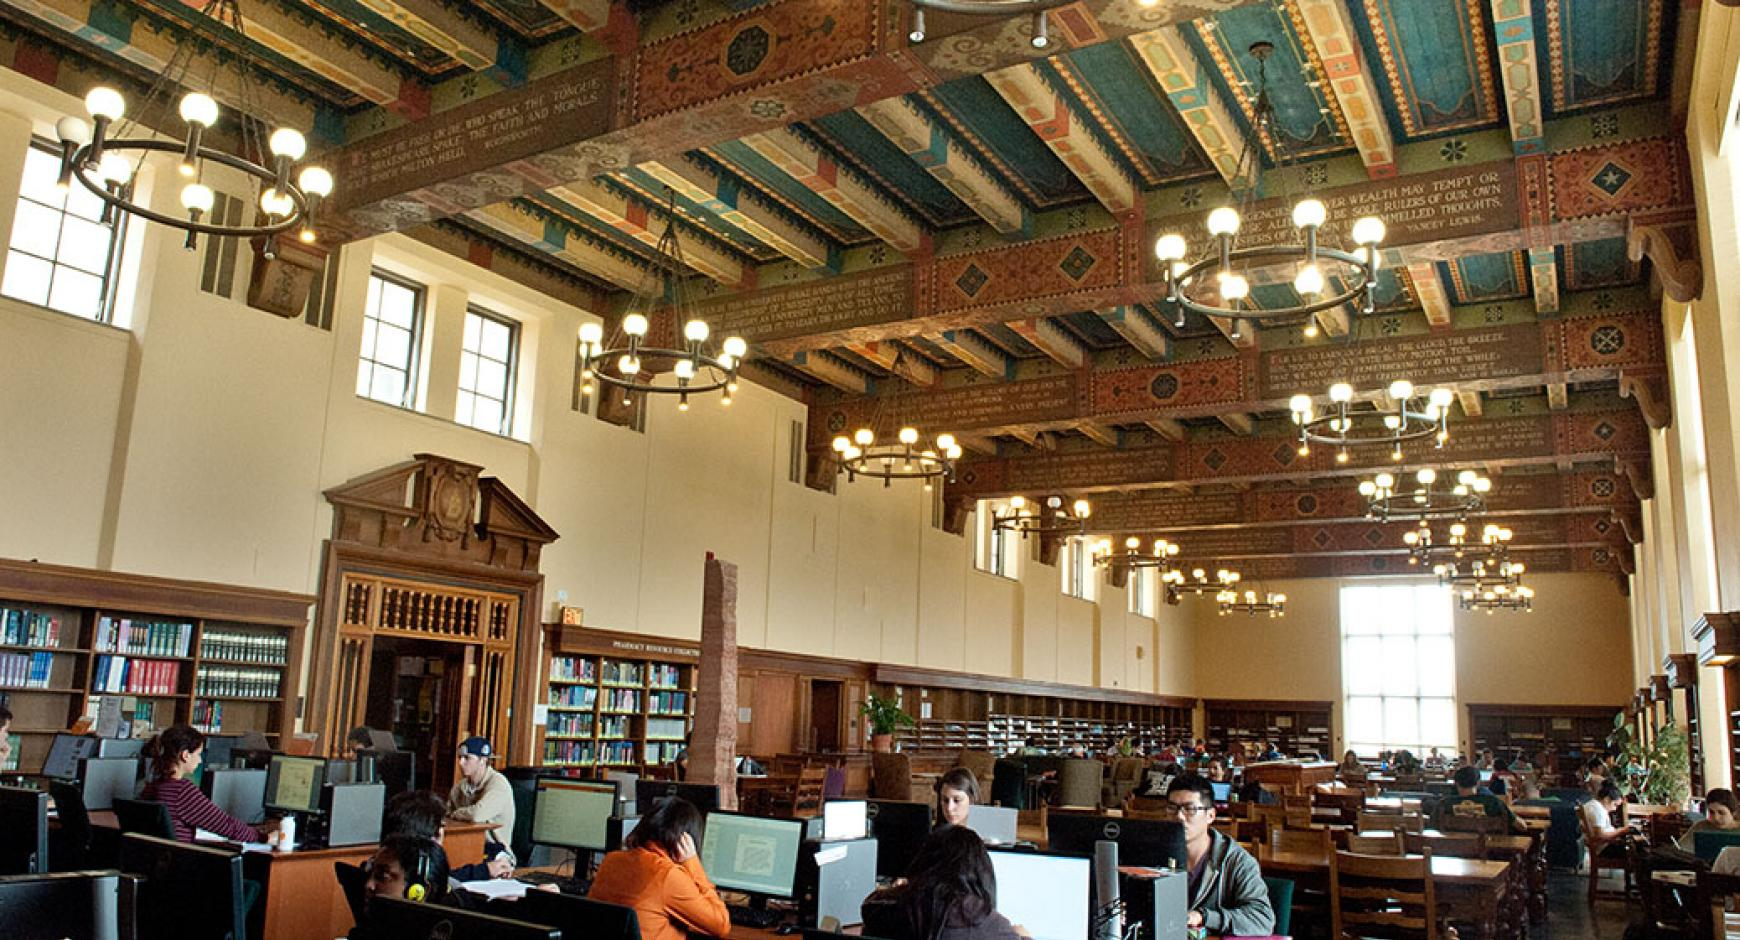 students working in traditional library space at the life science library